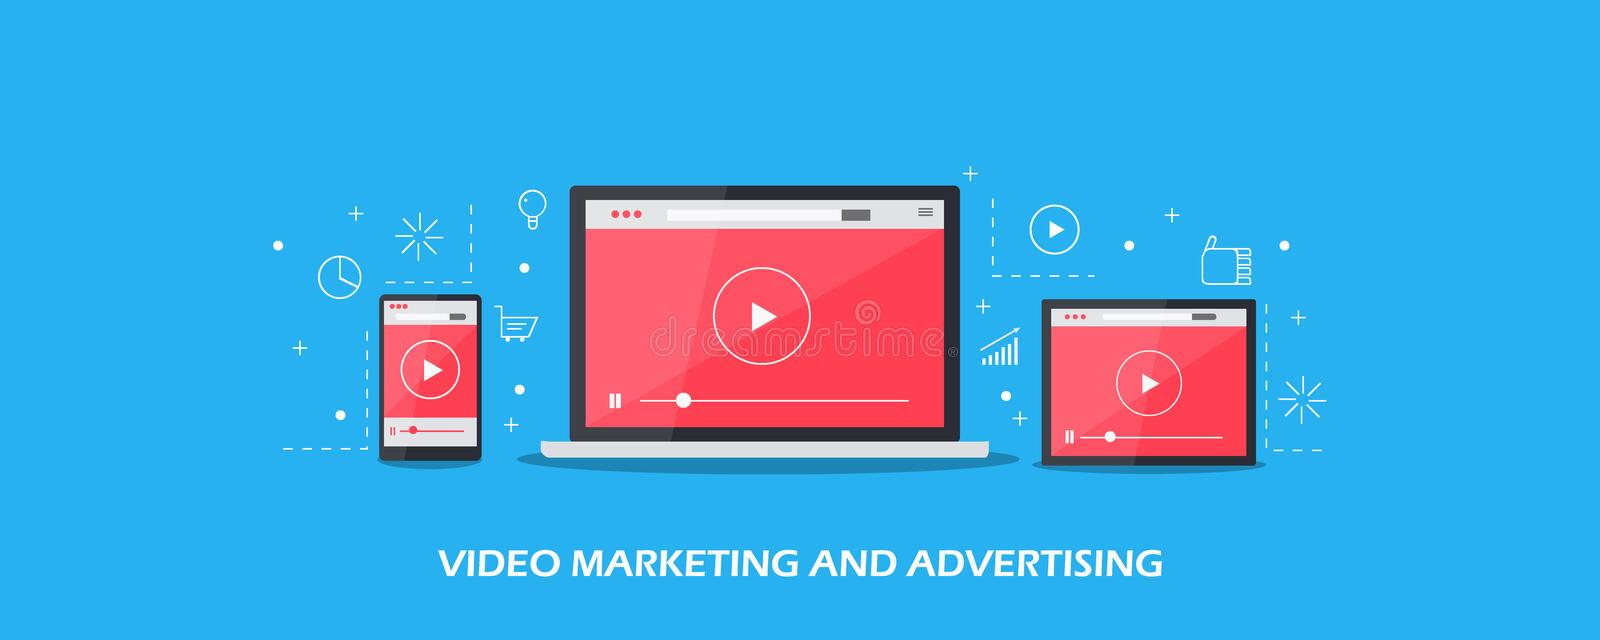 Video marketing, video advertising and promotion on digital devices. Flat design vector banner. Video content showing on digital devices, laptop, desktop royalty free illustration